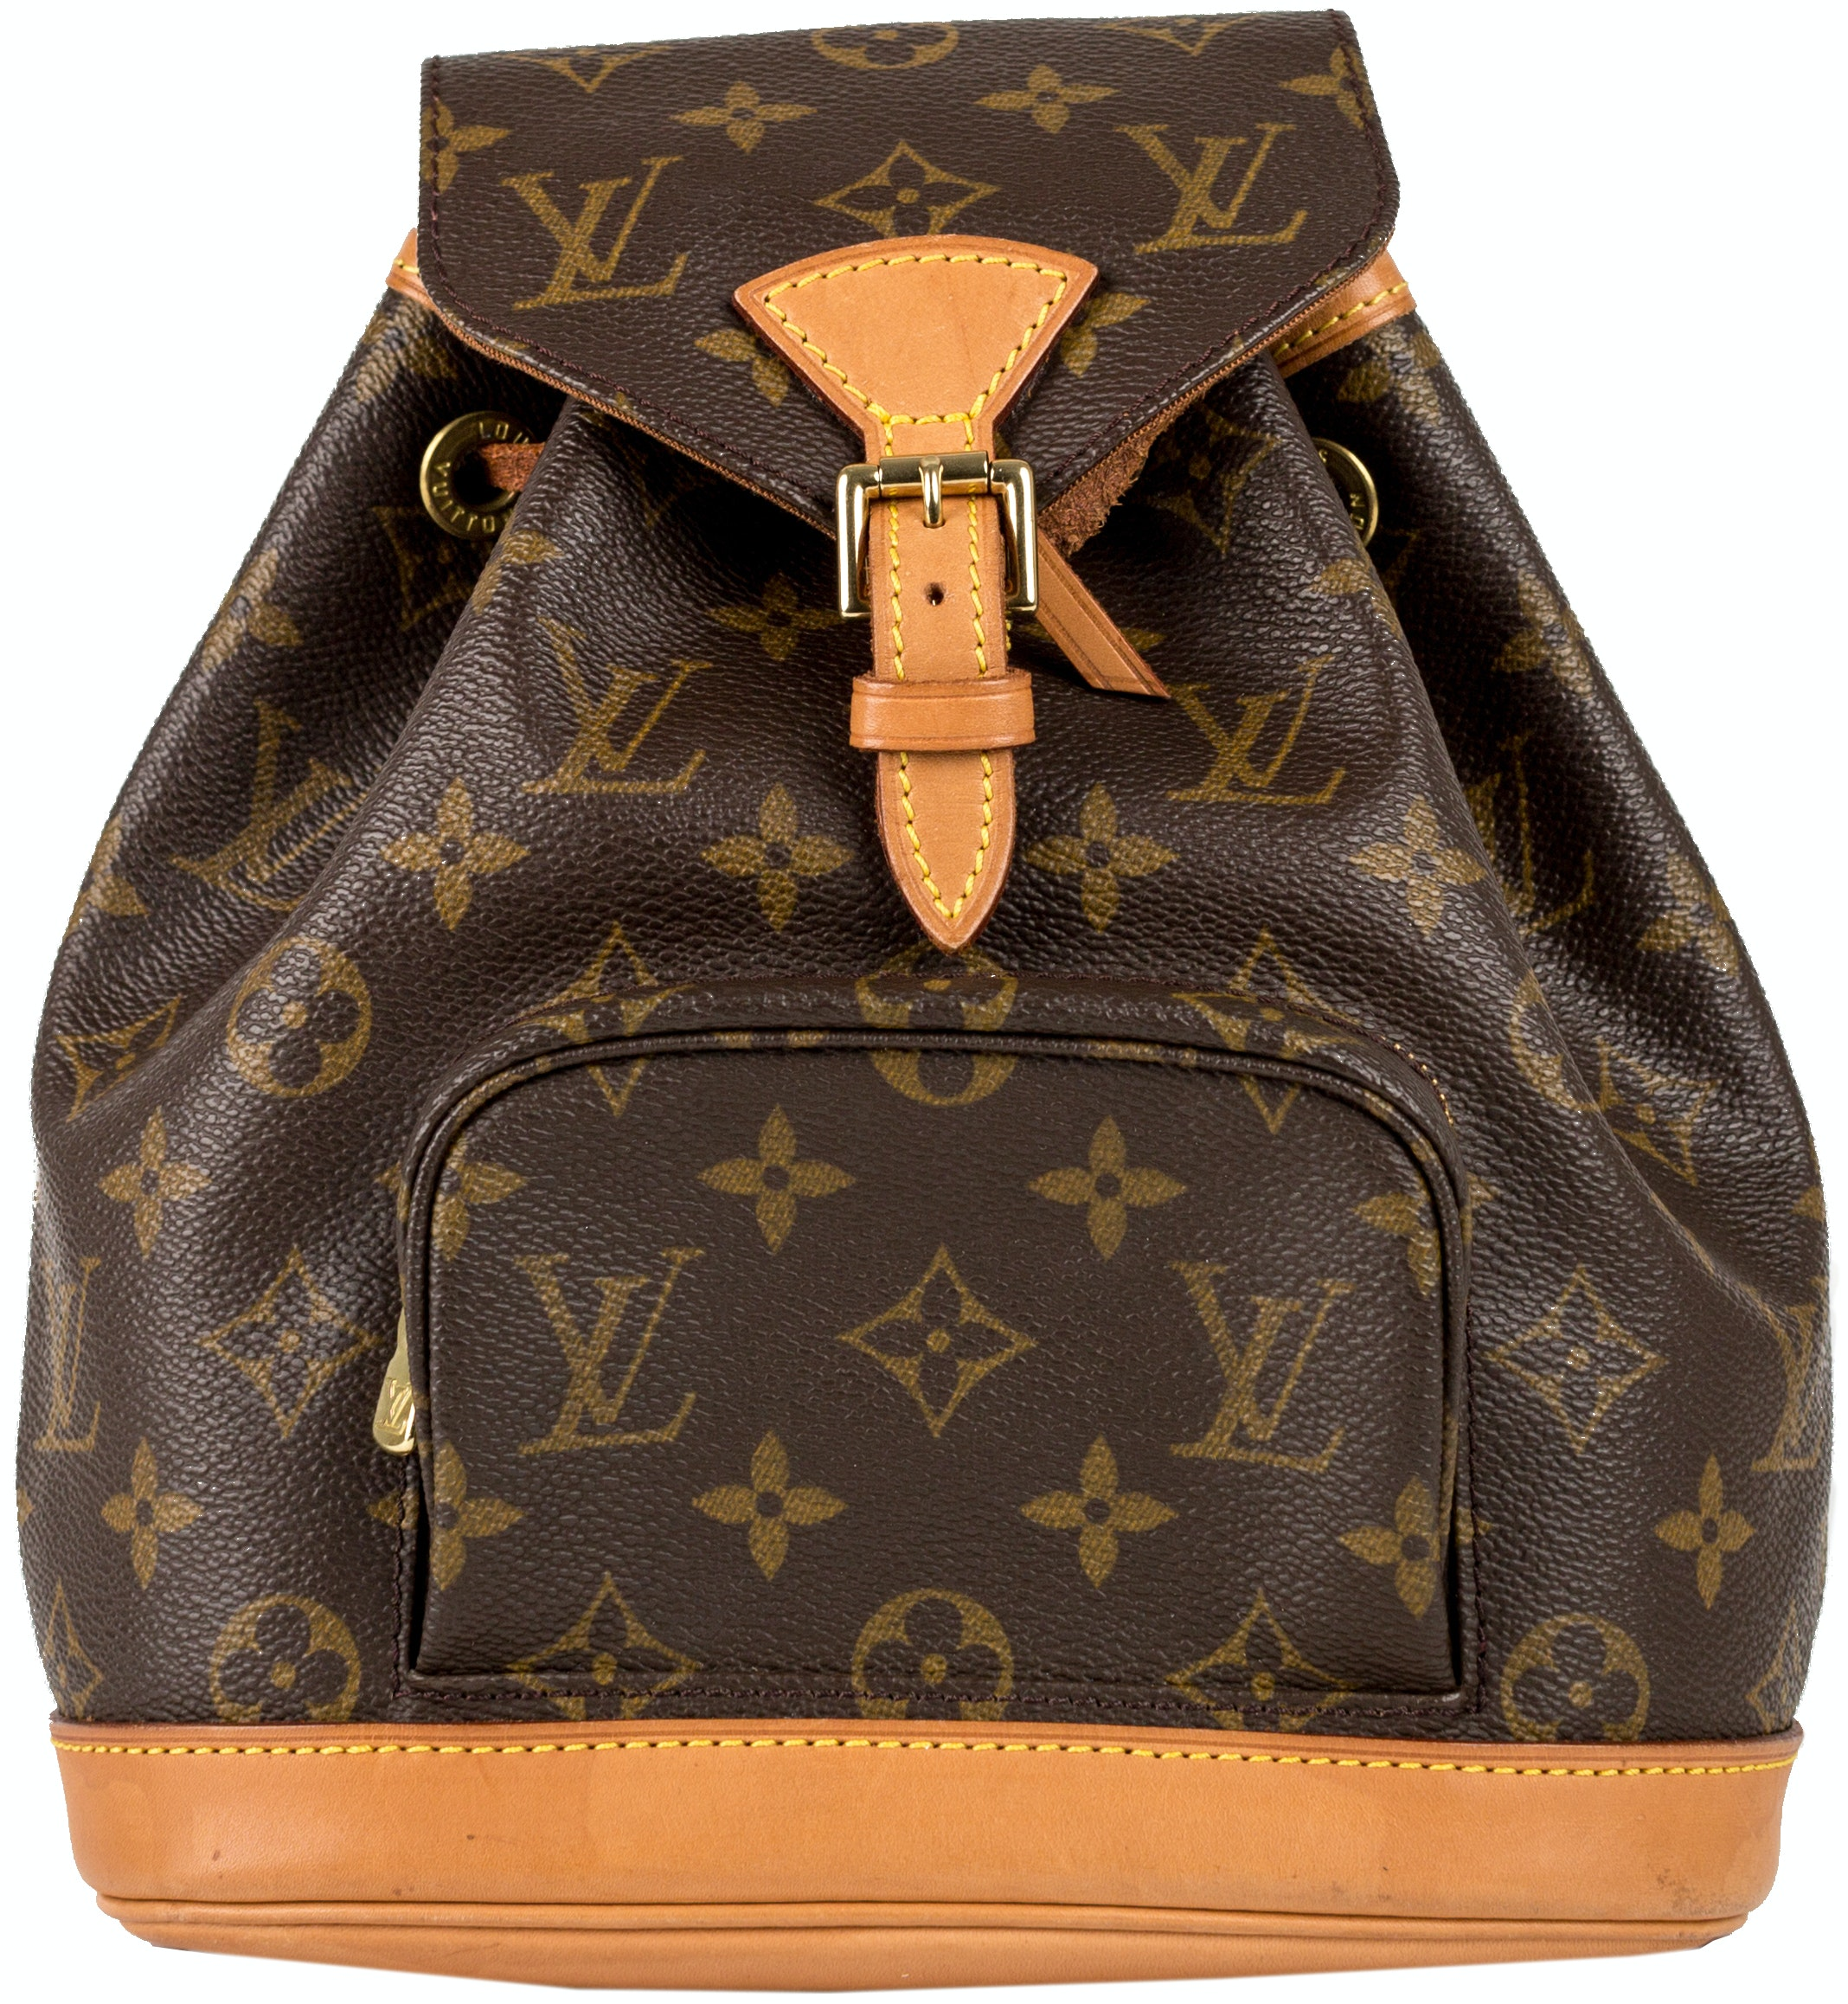 Louis Vuitton Montsouris Monogram MM Brown